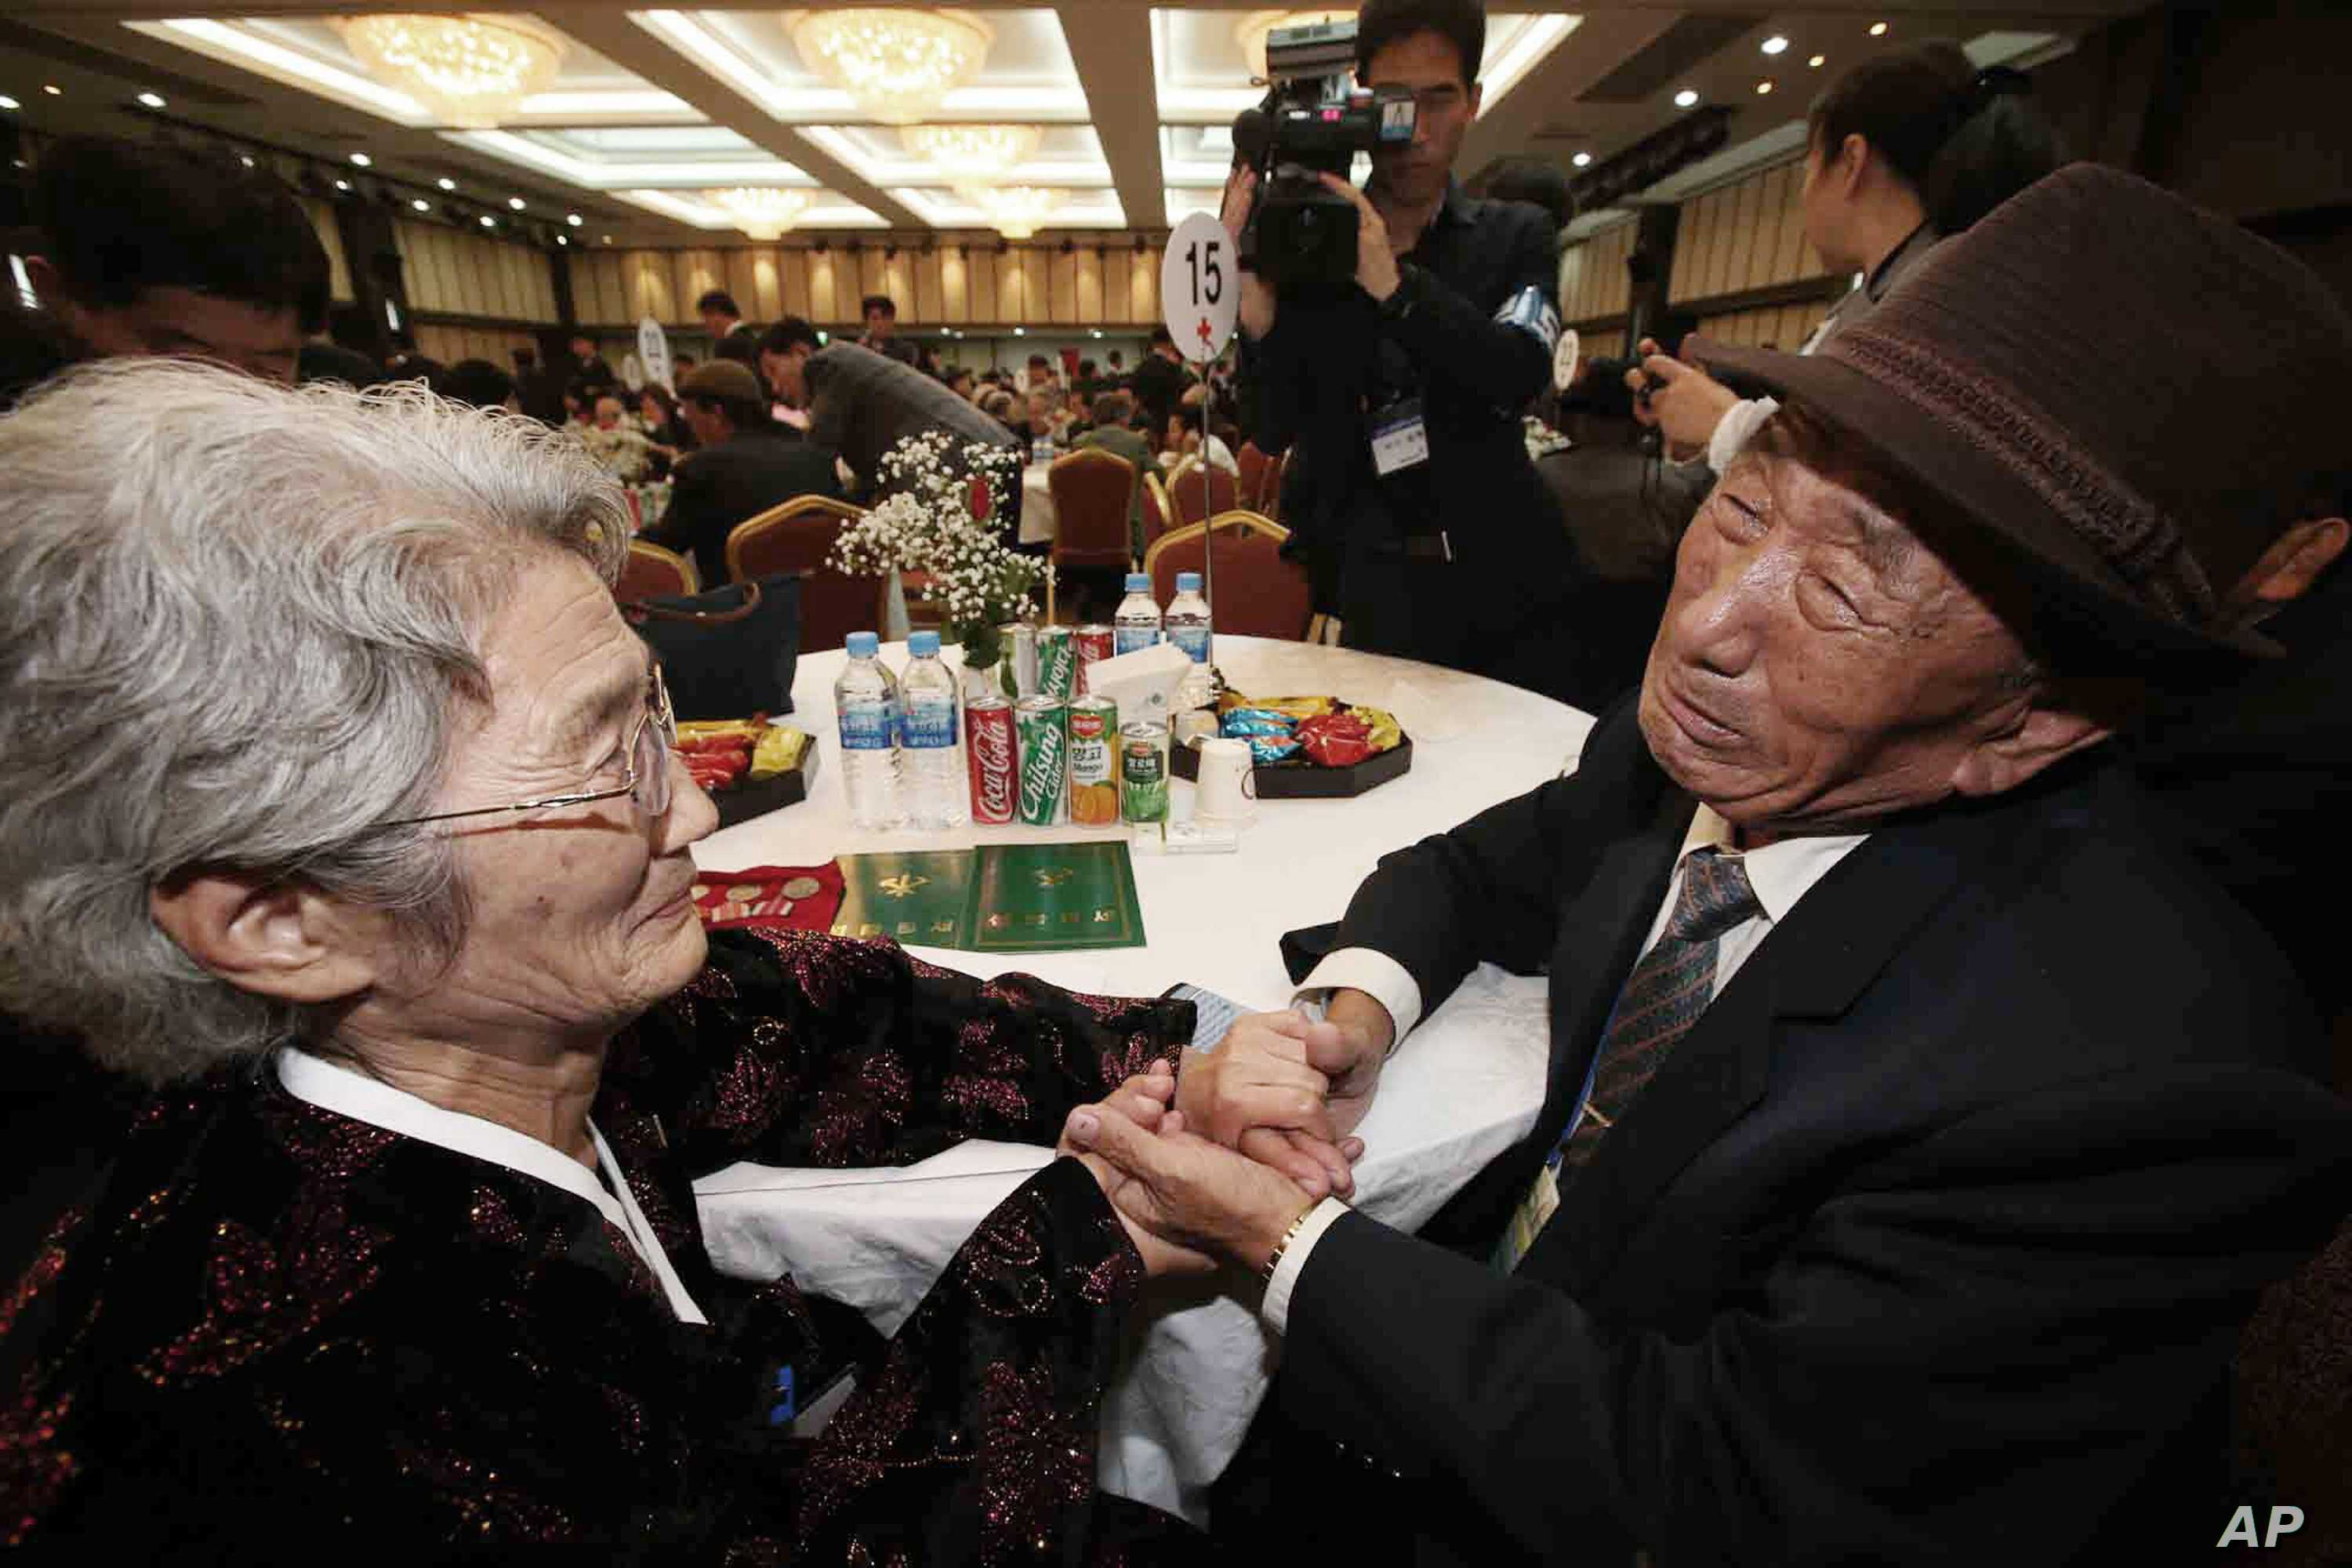 South Korean Kim Bock-rack, right, meets with his North Korean sister Kim Jeon Soon during the Separated Family Reunion Meeting at Diamond Mountain resort in North Korea, Oct. 20, 2015.